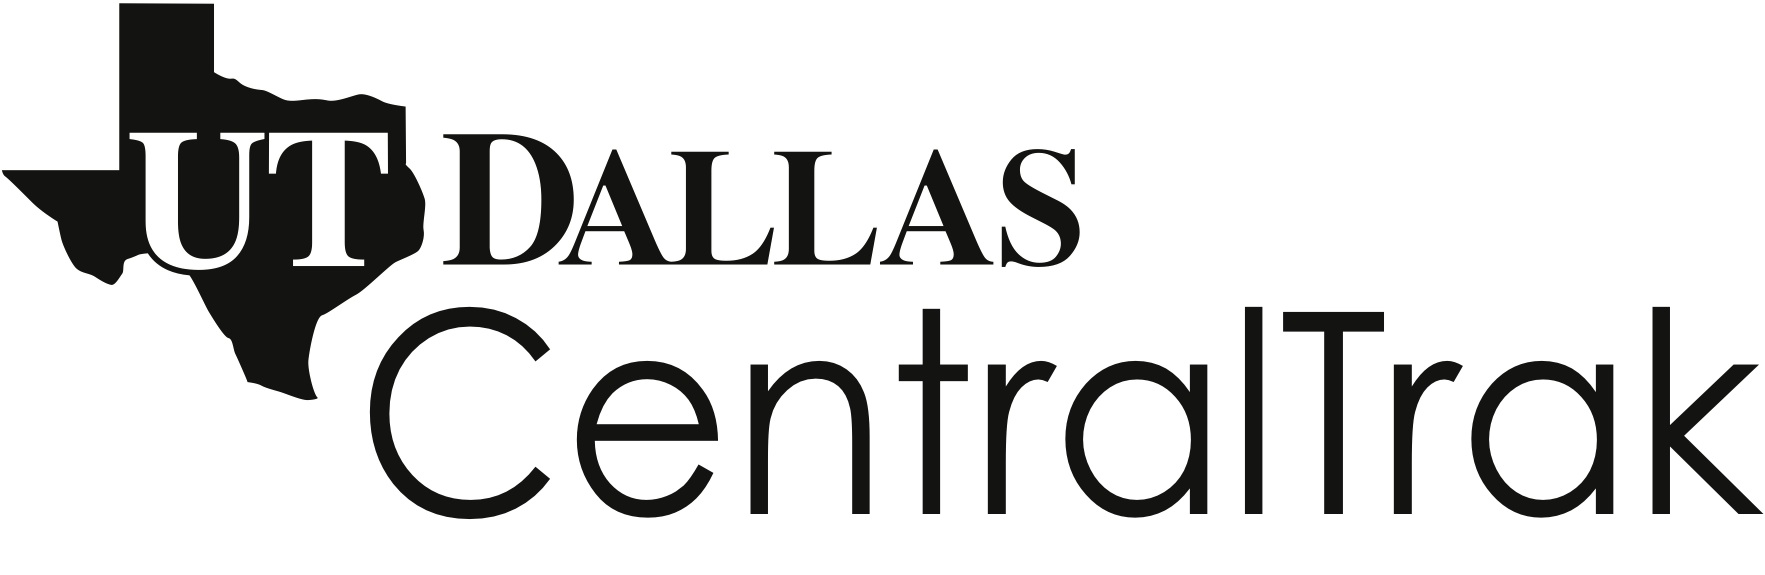 Logo for CentralTrak, the artist residency program at The University of Texas at Dallas